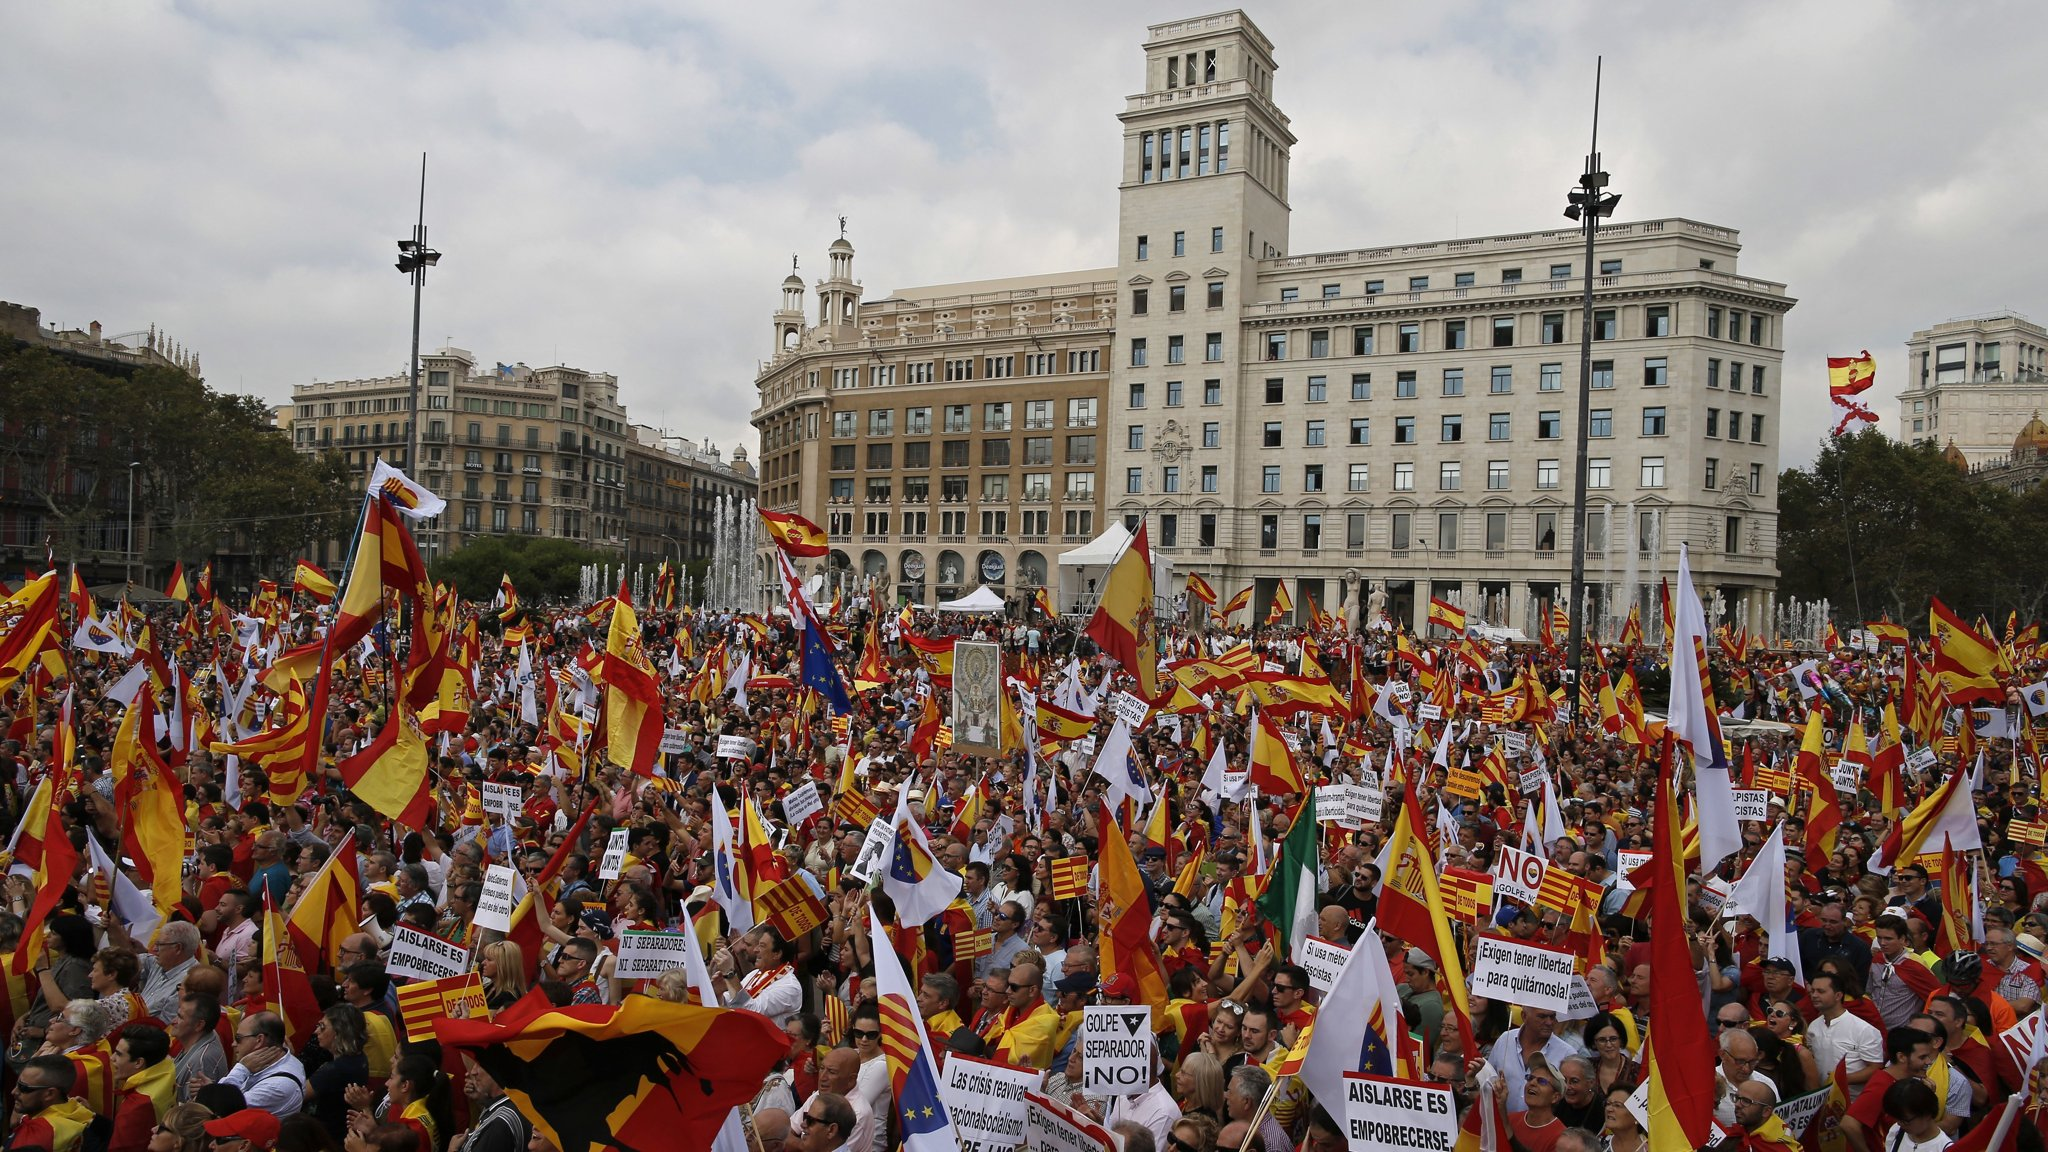 Catalan independence movement, Catalan referendum, Madrid crackdown, paramilitary police, Spanish protests, Catalan protests